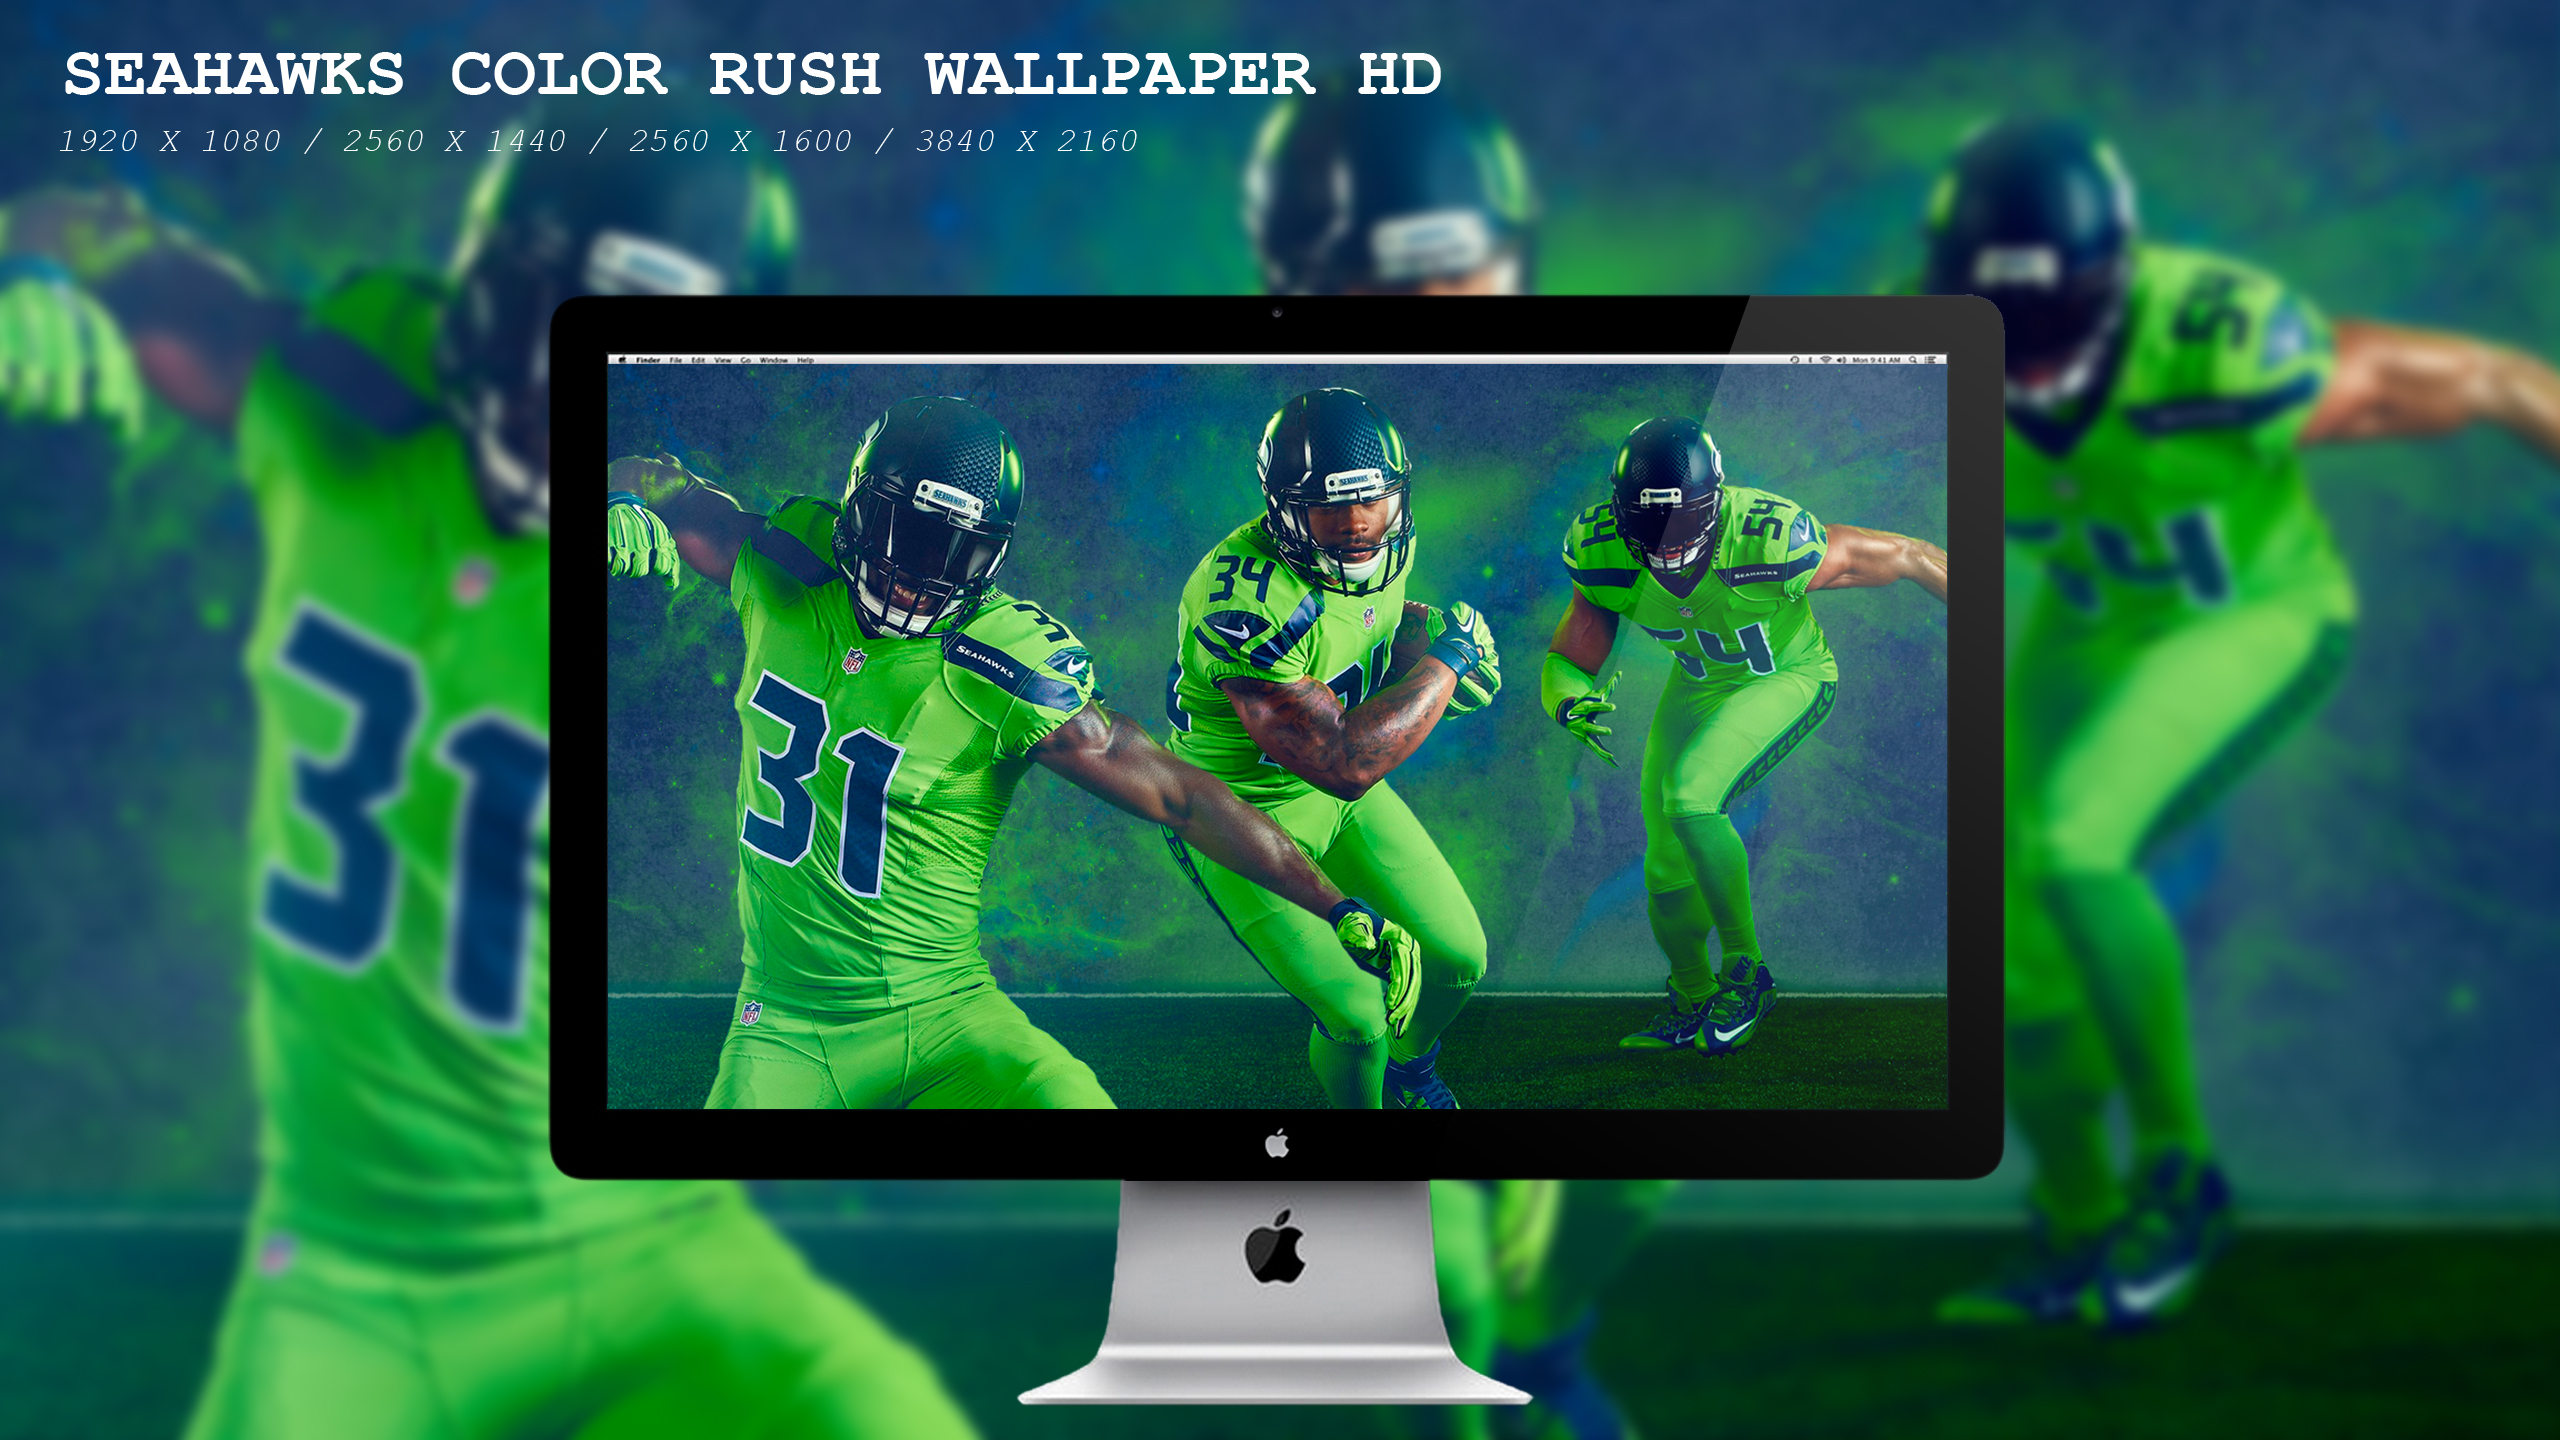 Seahawks Color Rush Wallpaper Hd By Beaware8 On Deviantart